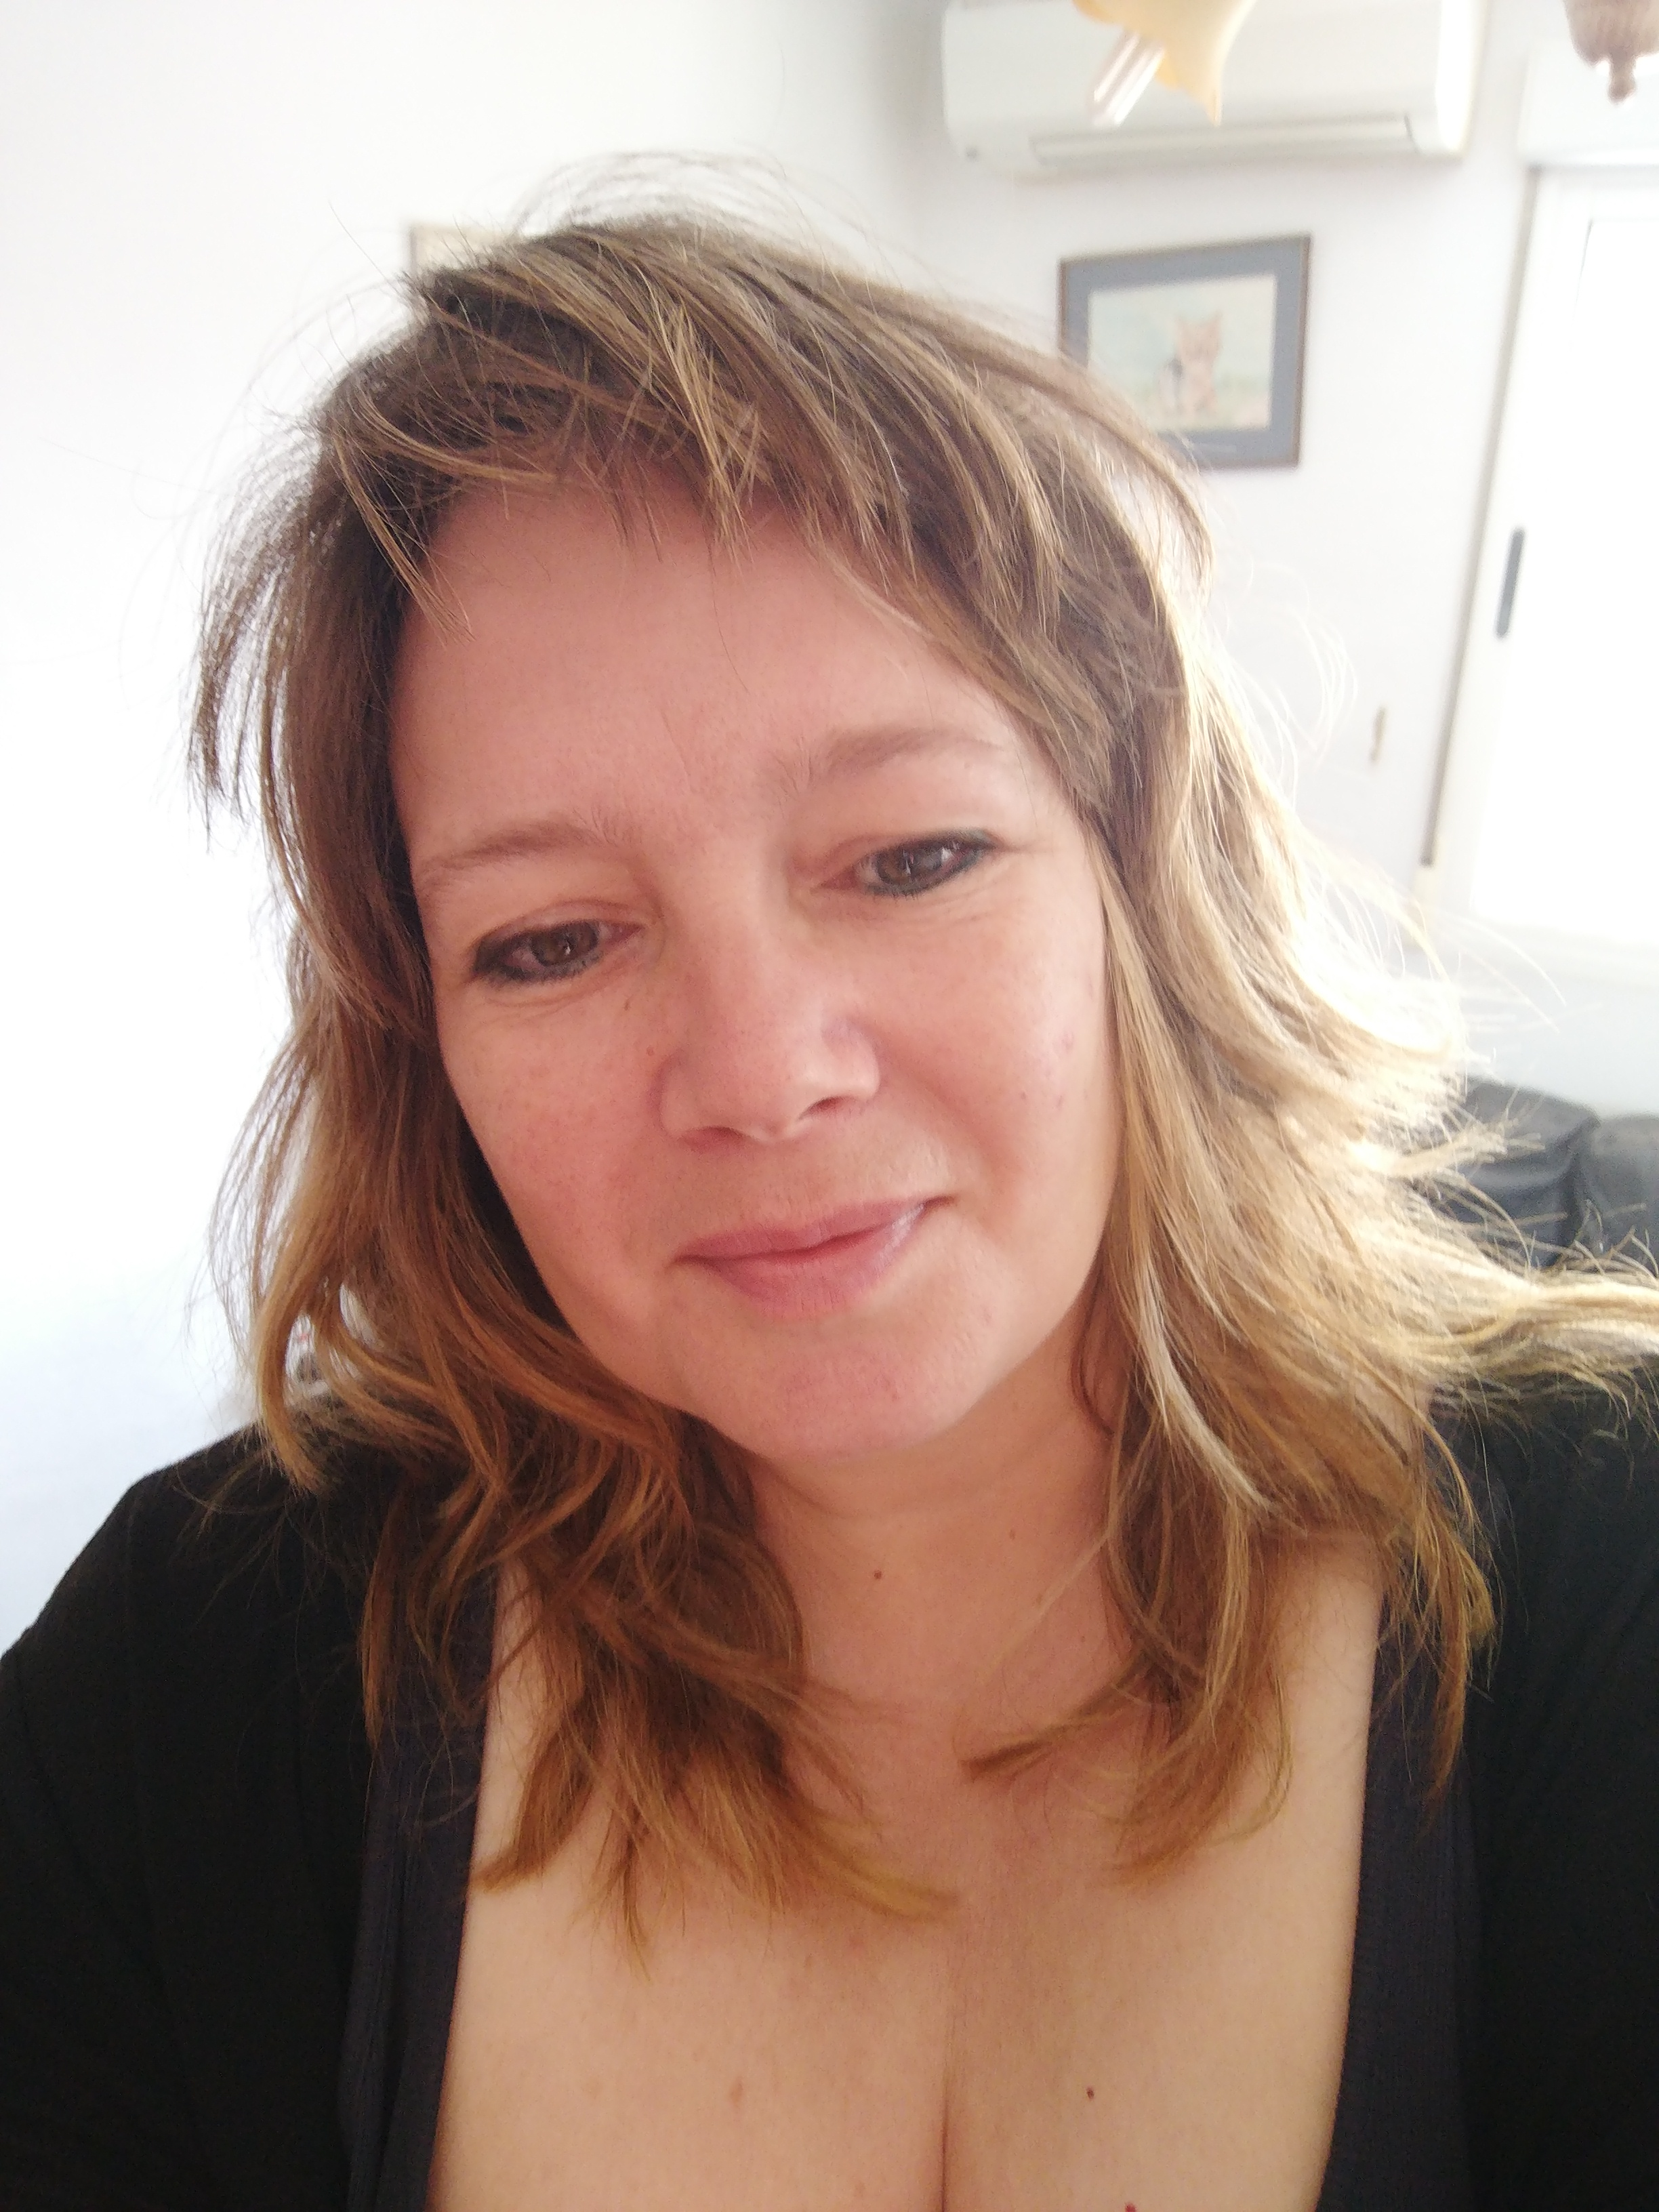 Author and Editor Annette Young